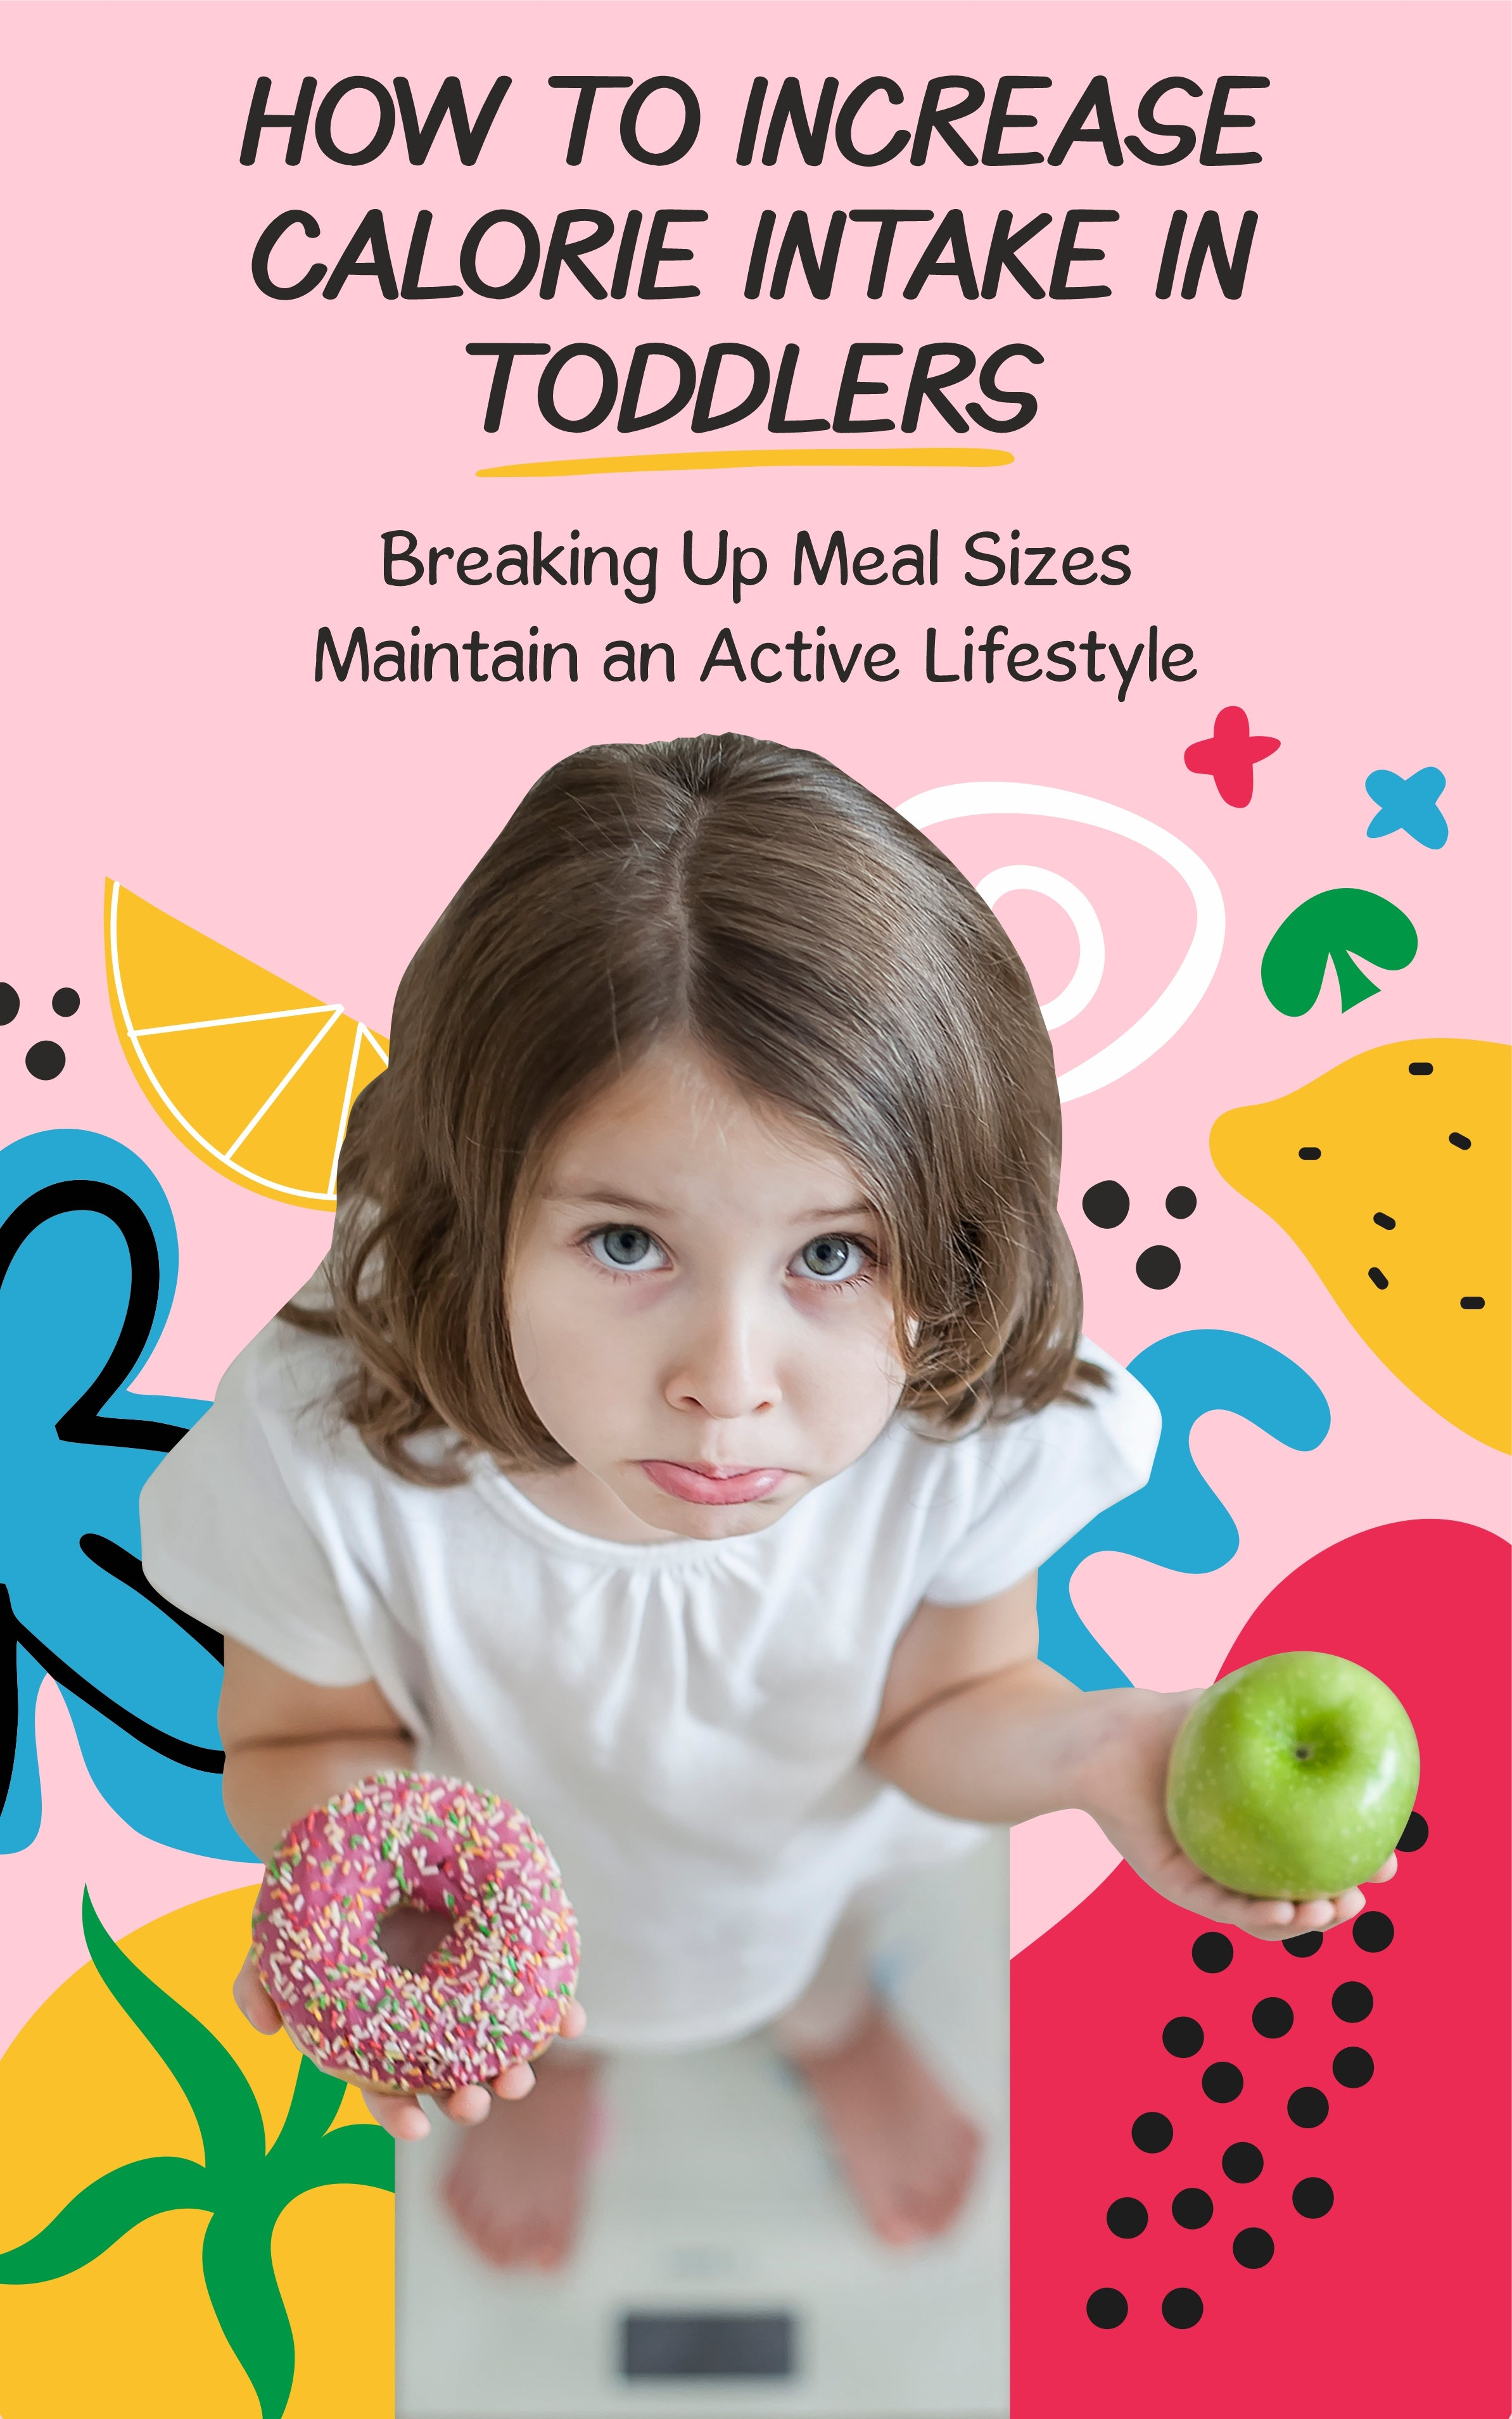 How to Increase Calorie Intake in Toddlers